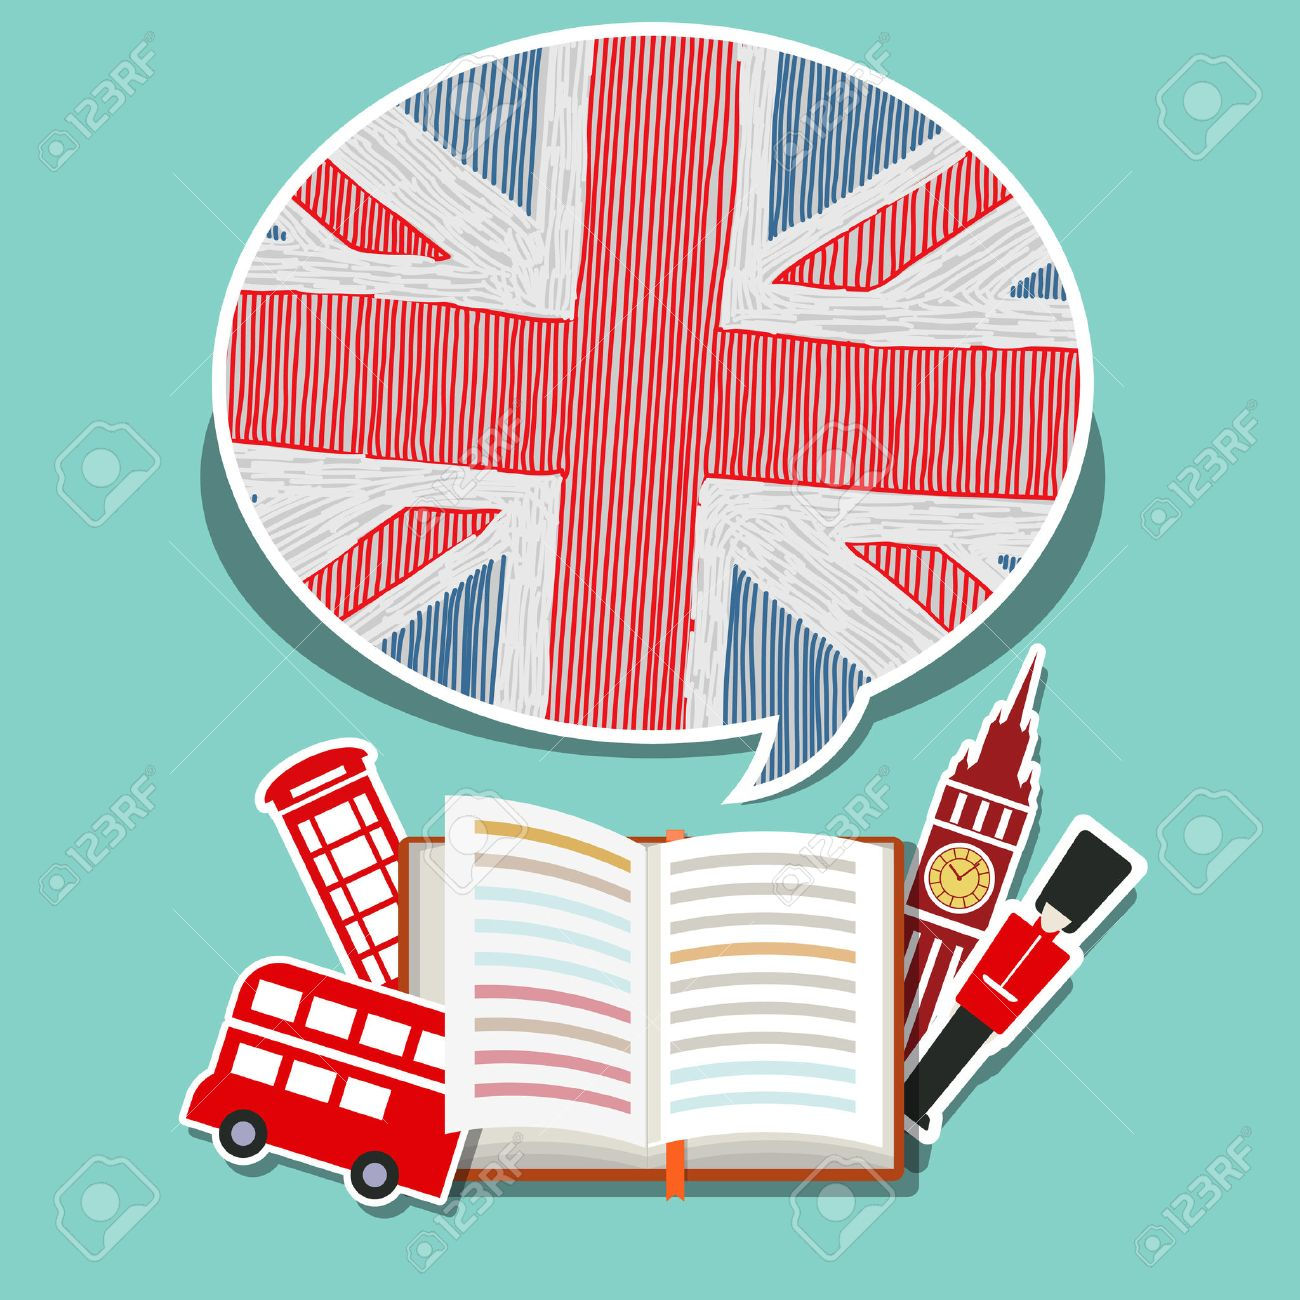 Concept of travel or studying English. Open book with English symbols. Flat design, vector illustration - 51792626